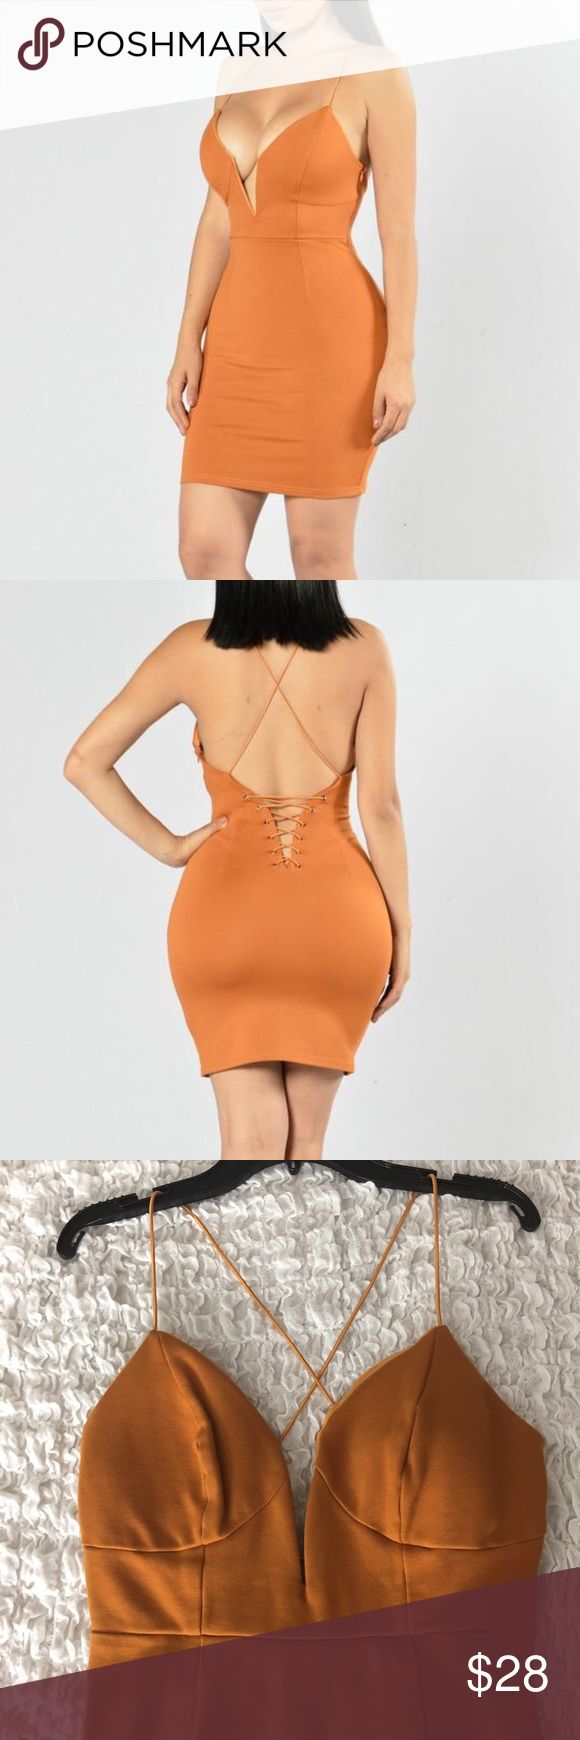 Fashion Nova Mini Dress Preowned deep orange medium mini dress. Spaghetti straps. Criss cross back. Zipper on the side. Low v neckline. Worn once. Still in good condition. Fashion Nova Dresses Mini